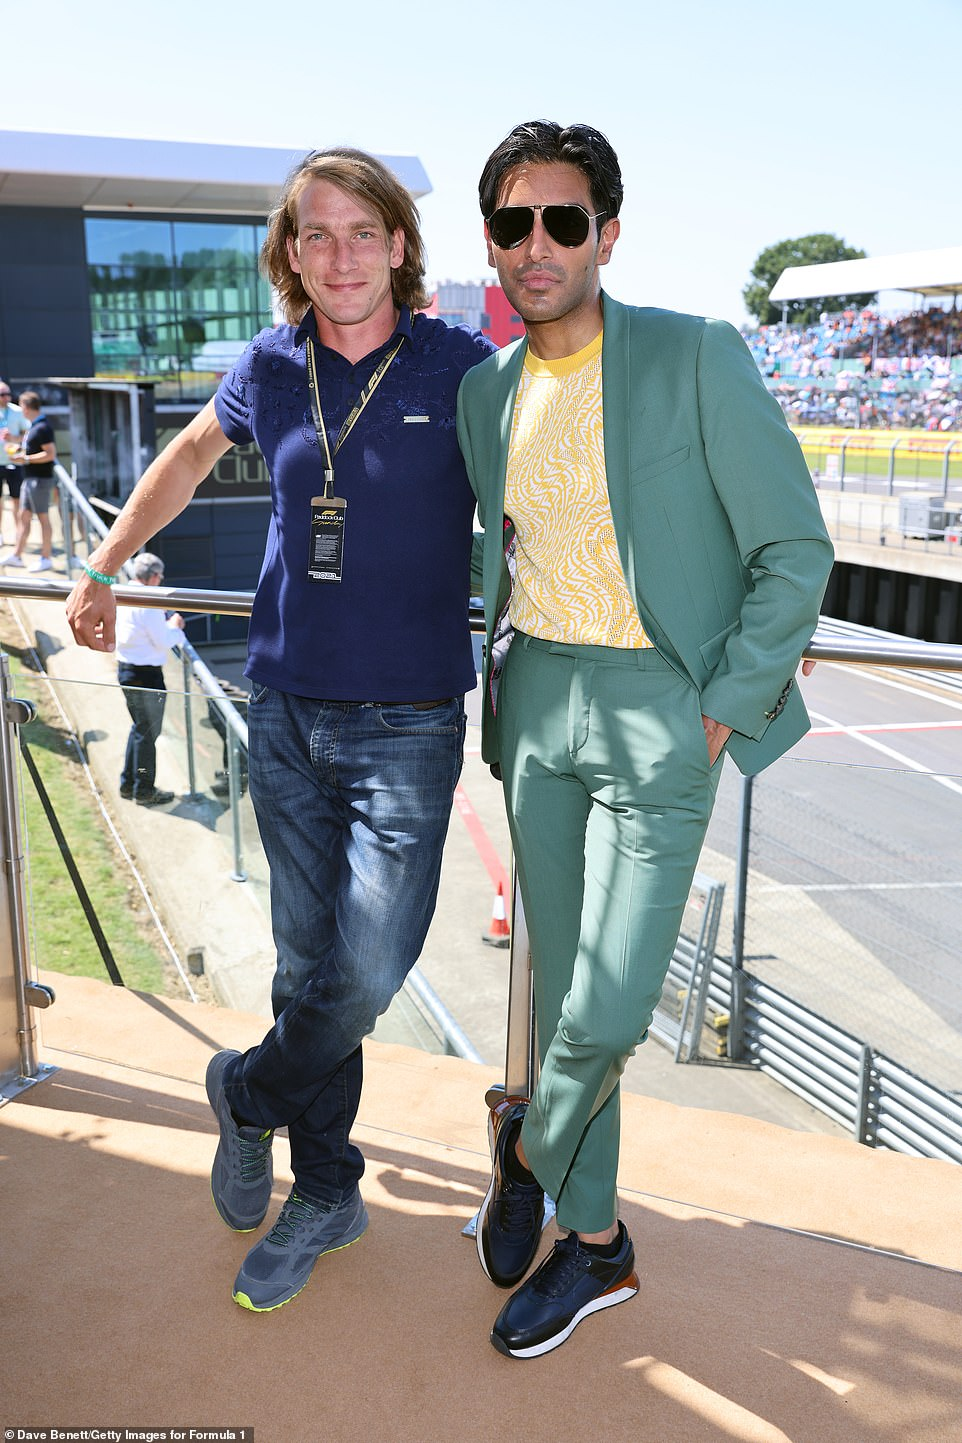 Meeting up:The model even found the time to meet up with racer Freddie Hunt for a photo together